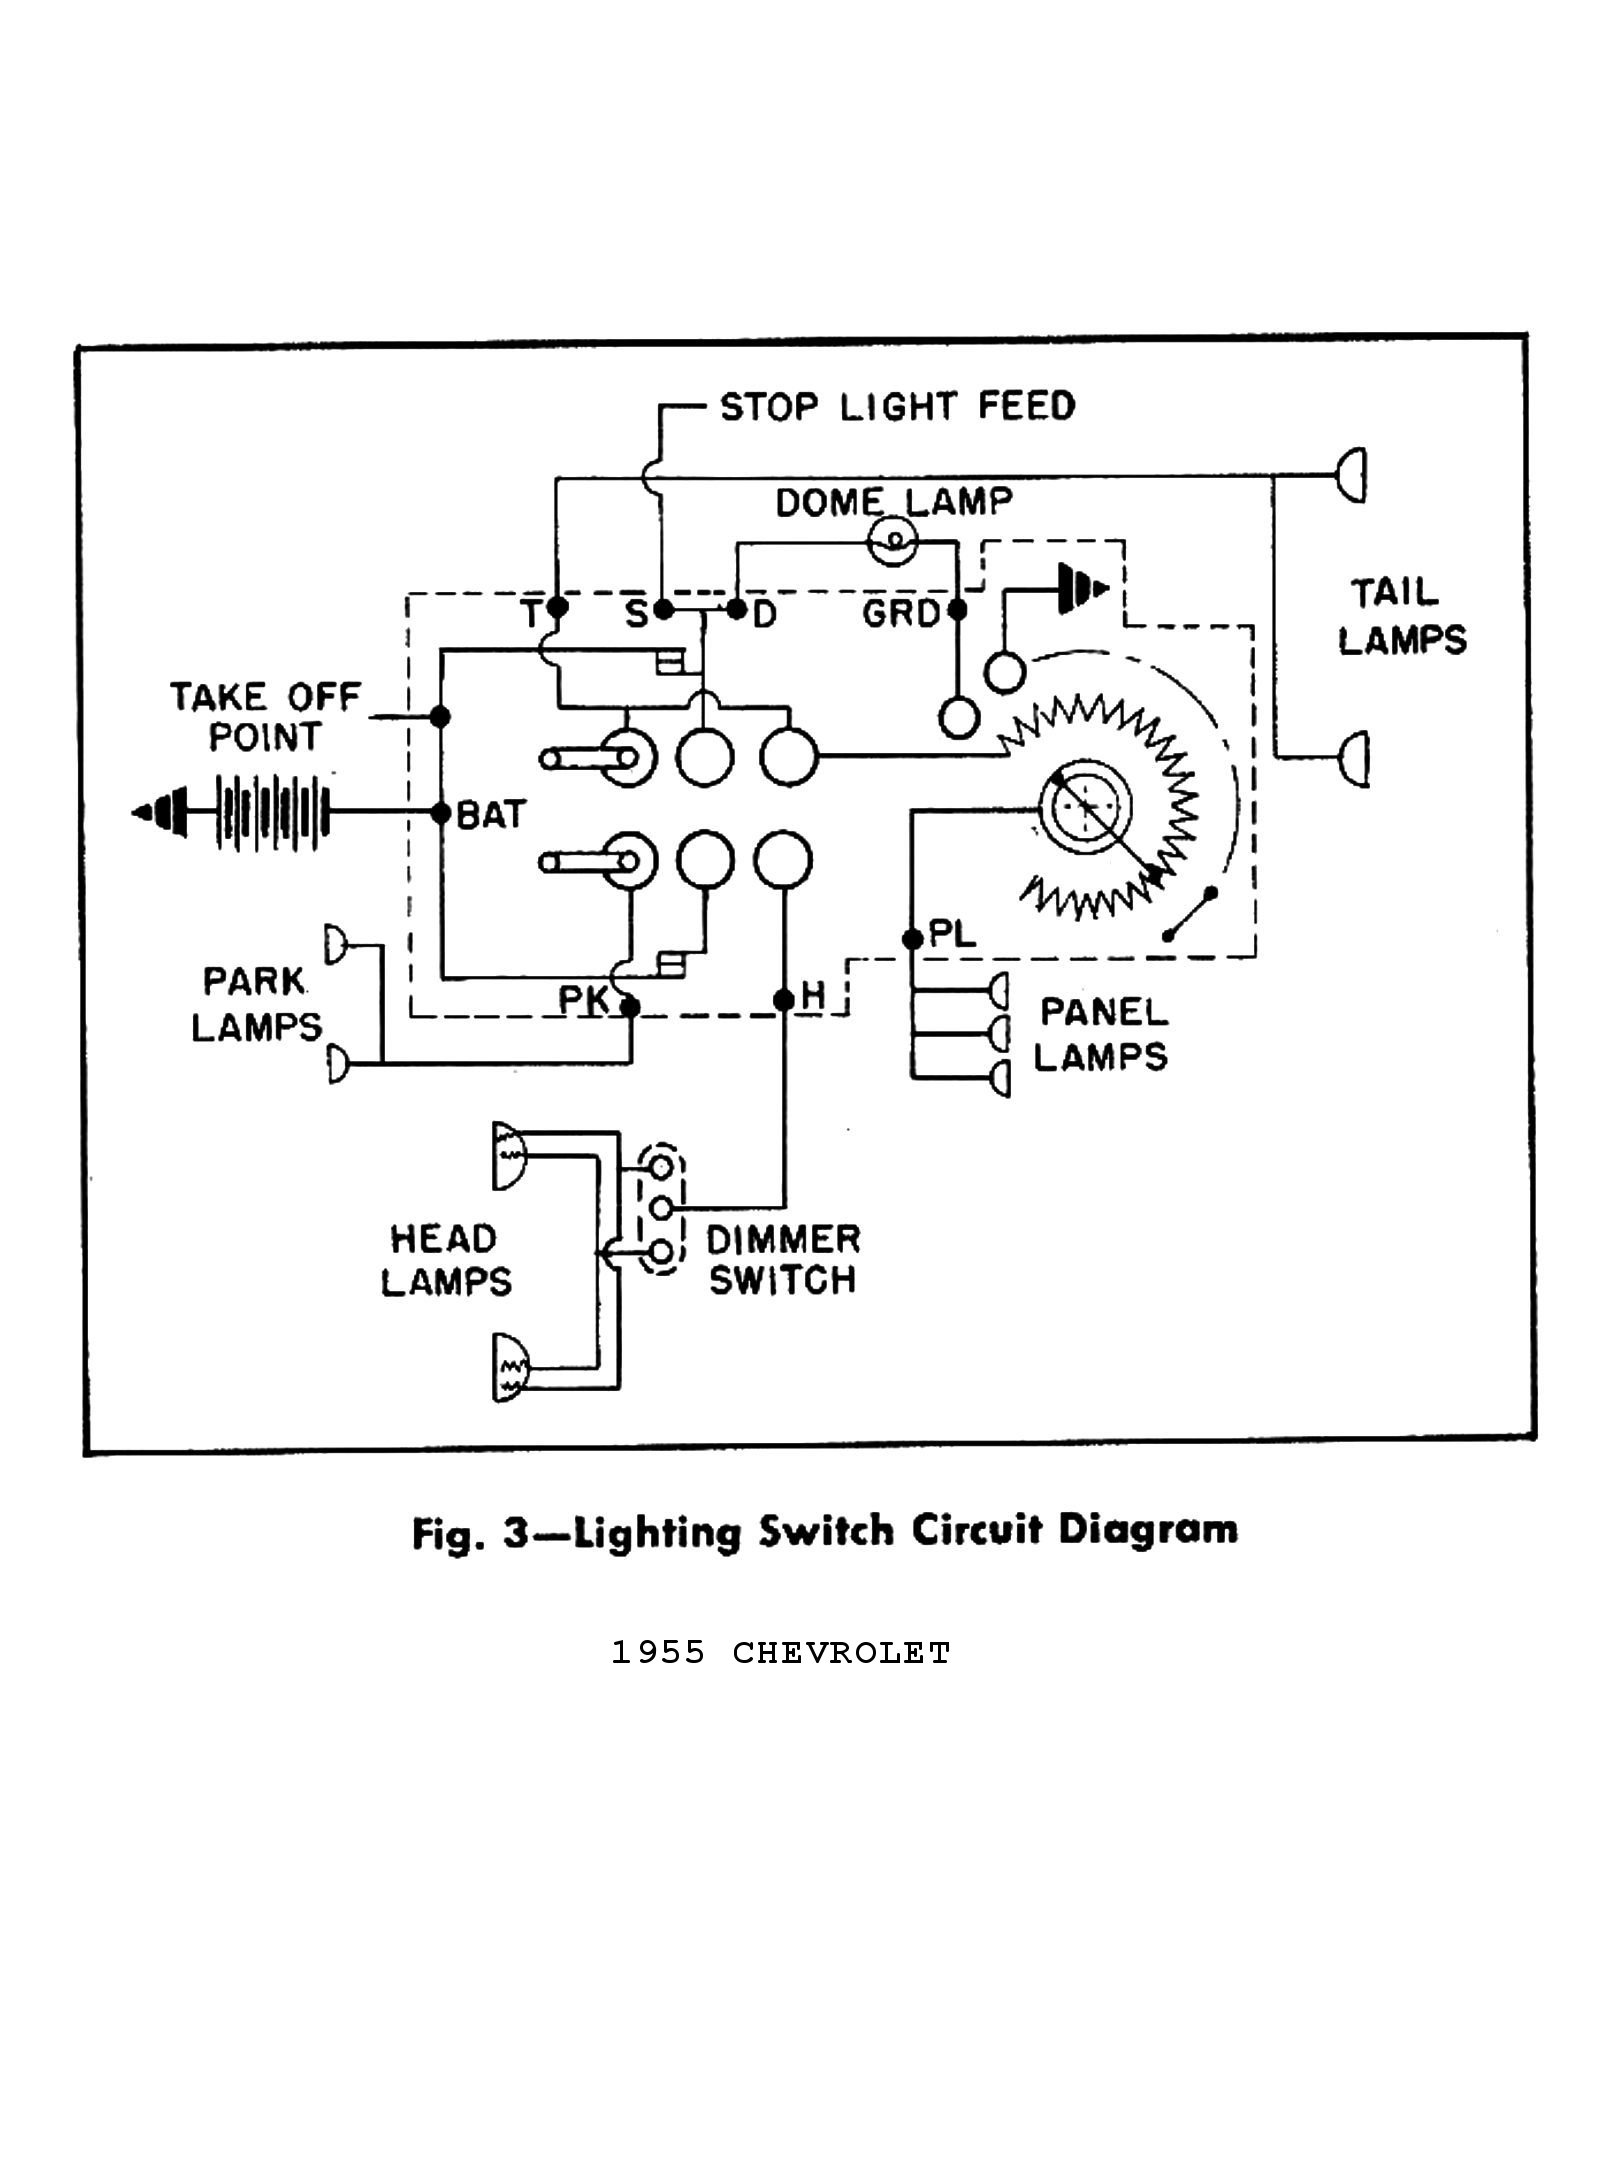 hight resolution of gm dome light wiring harness wiring library pro light wiring 1955 lighting switch circuit chevy wiring